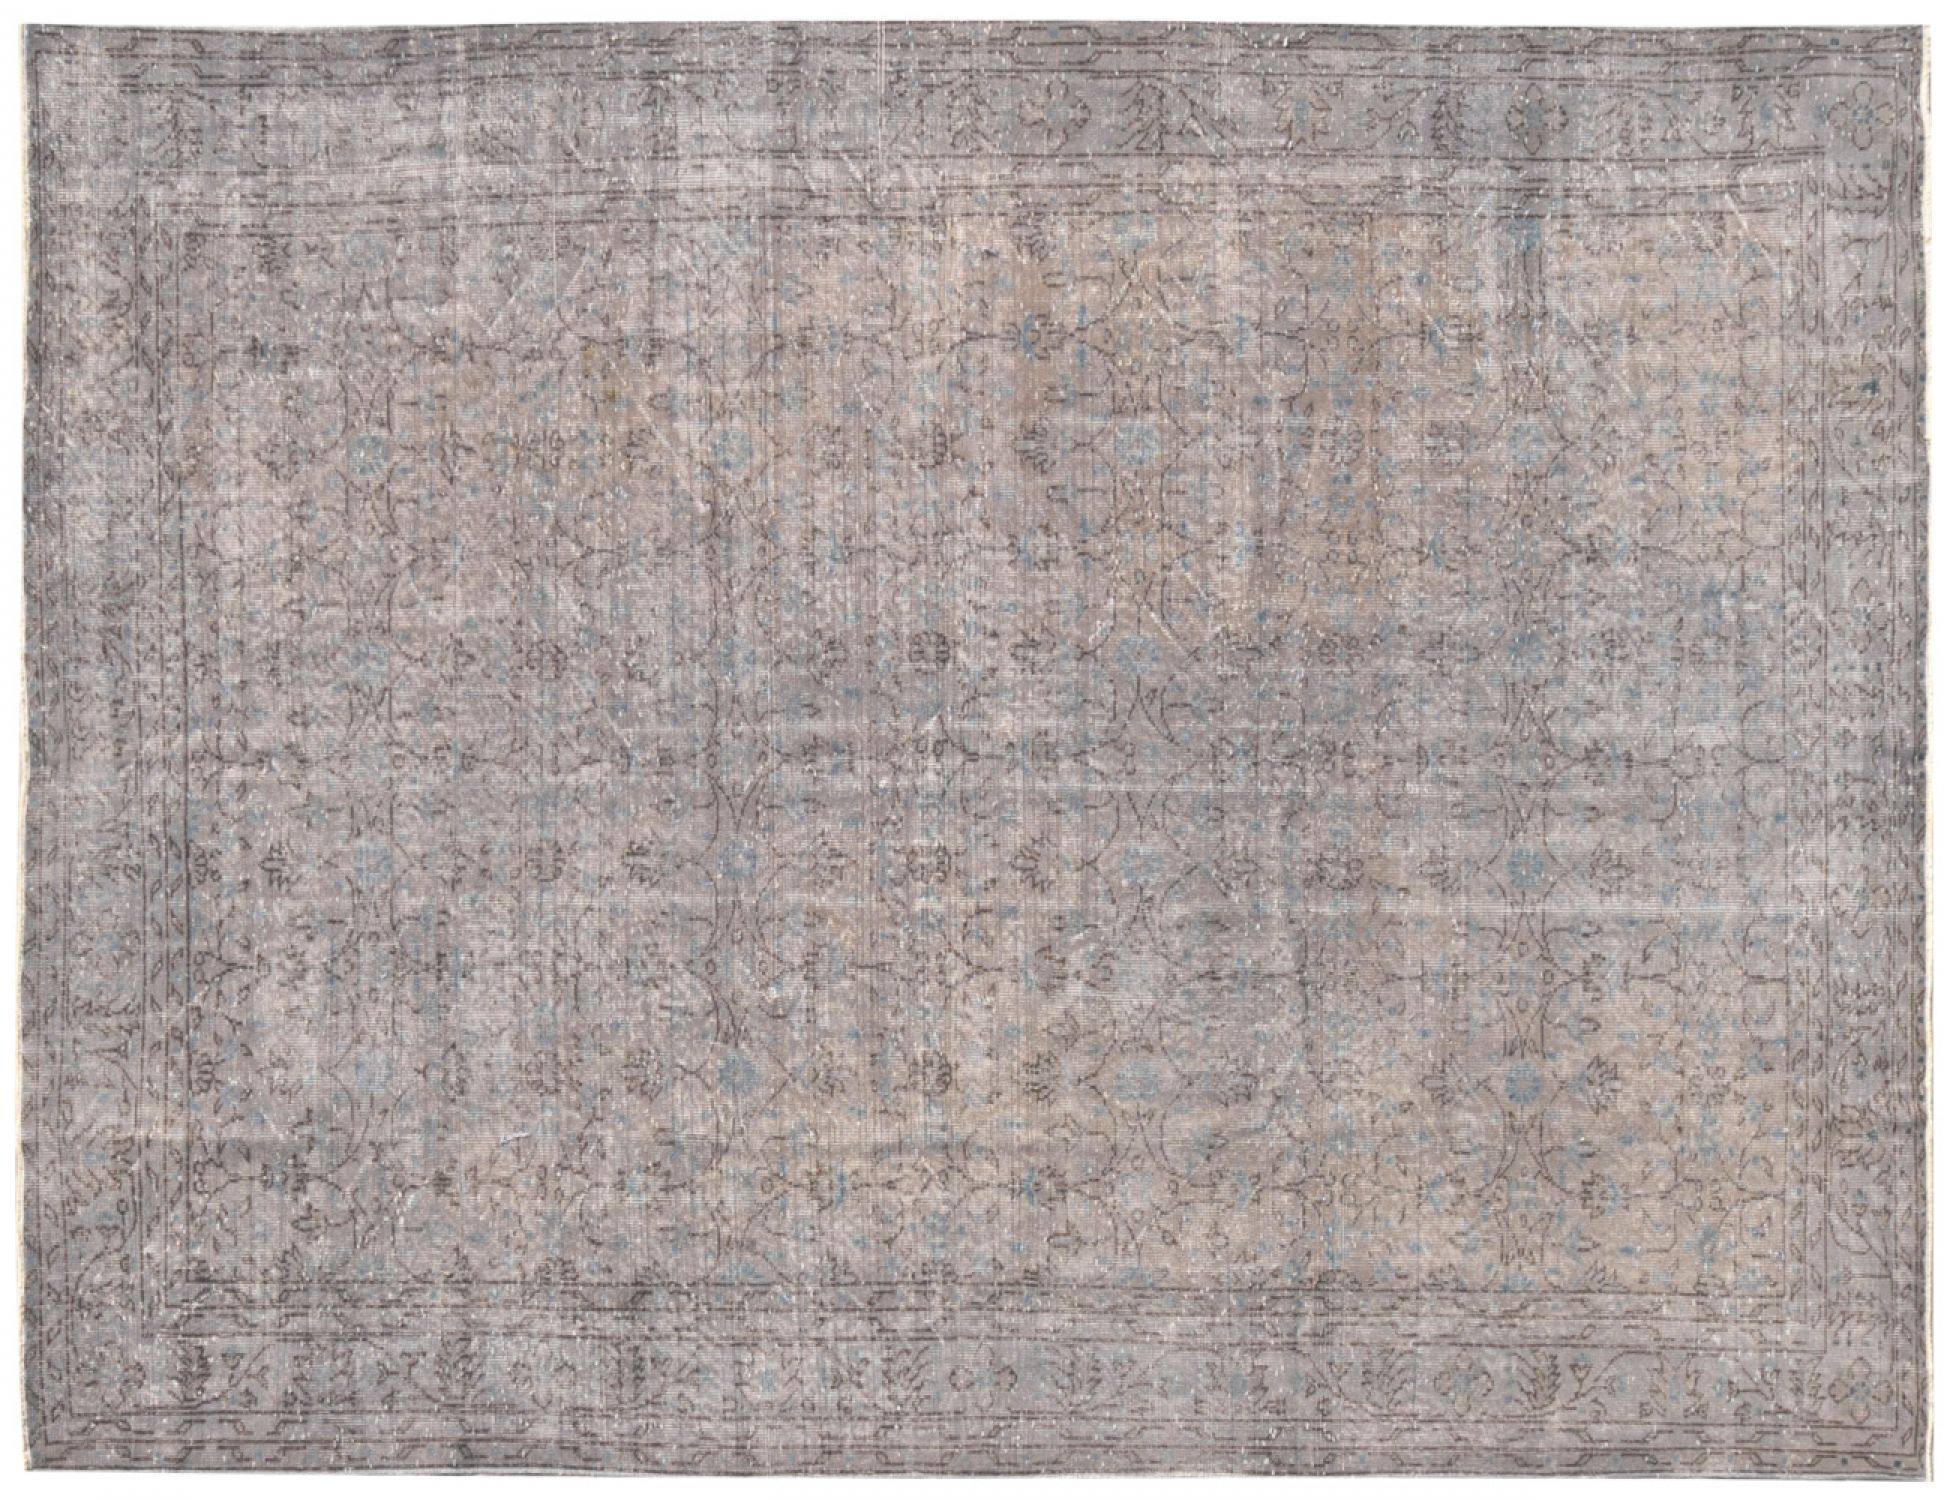 Vintage Carpet  grey <br/>297 x 210 cm